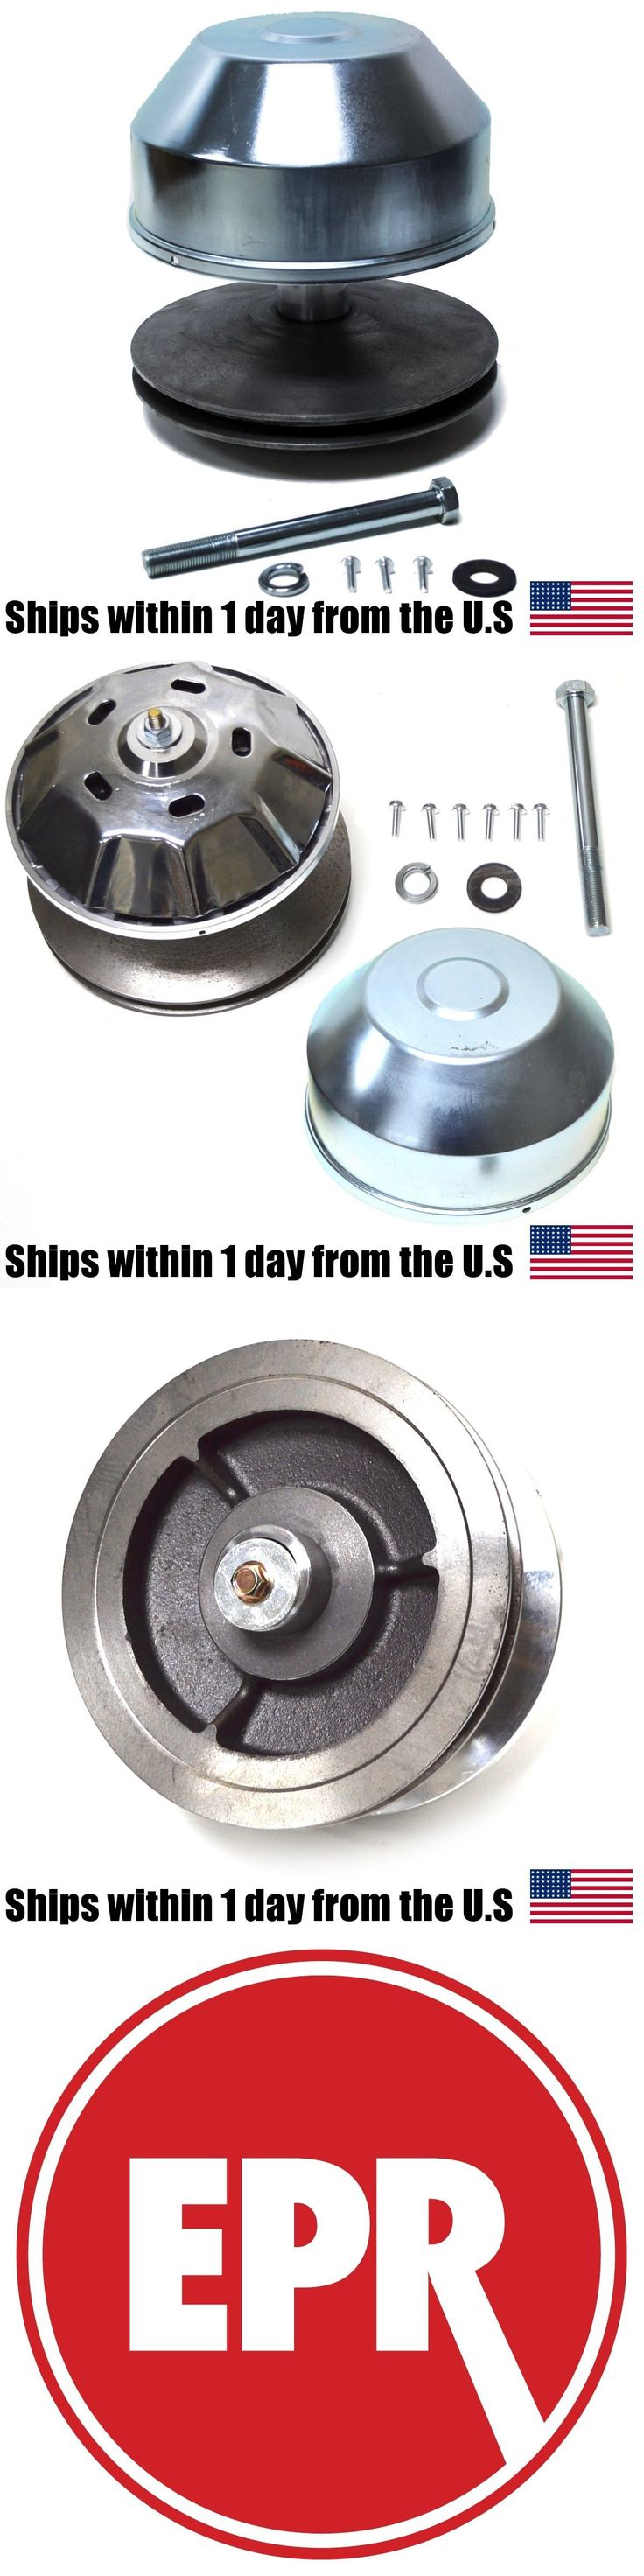 Push-Pull Golf Carts 75207: Yamaha Golf Cart Part G2-G22 Golf Cart Drive Clutch (4 Cycle) 1985- Up -> BUY IT NOW ONLY: $189.95 on eBay!